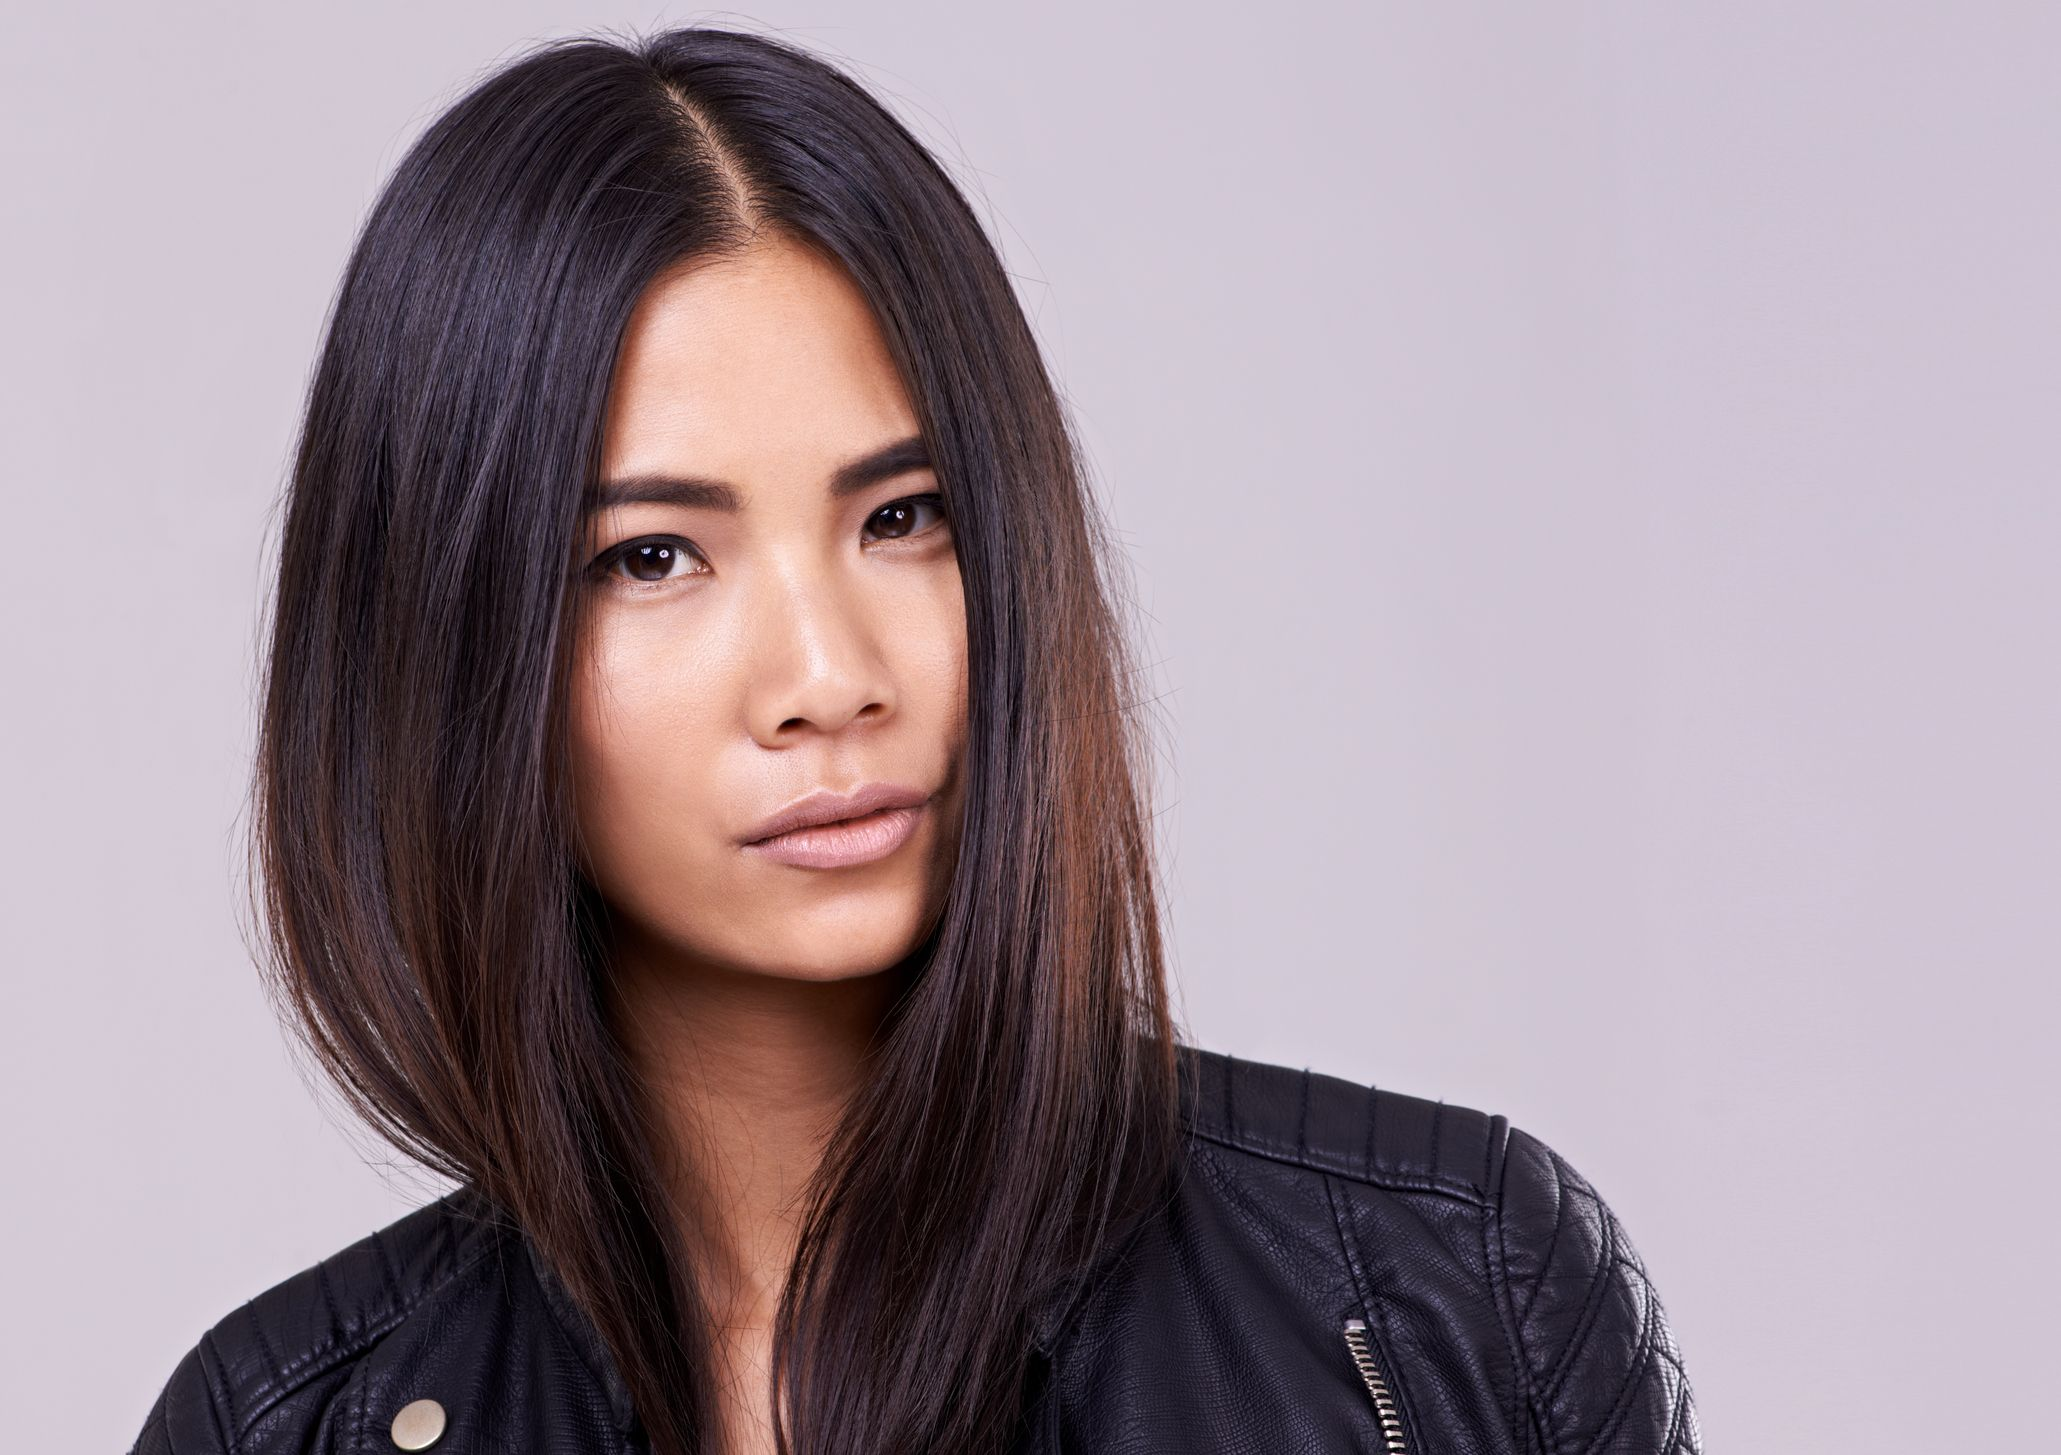 10 Best At-Home Keratin Treatments For Straighter, Smoother Hair